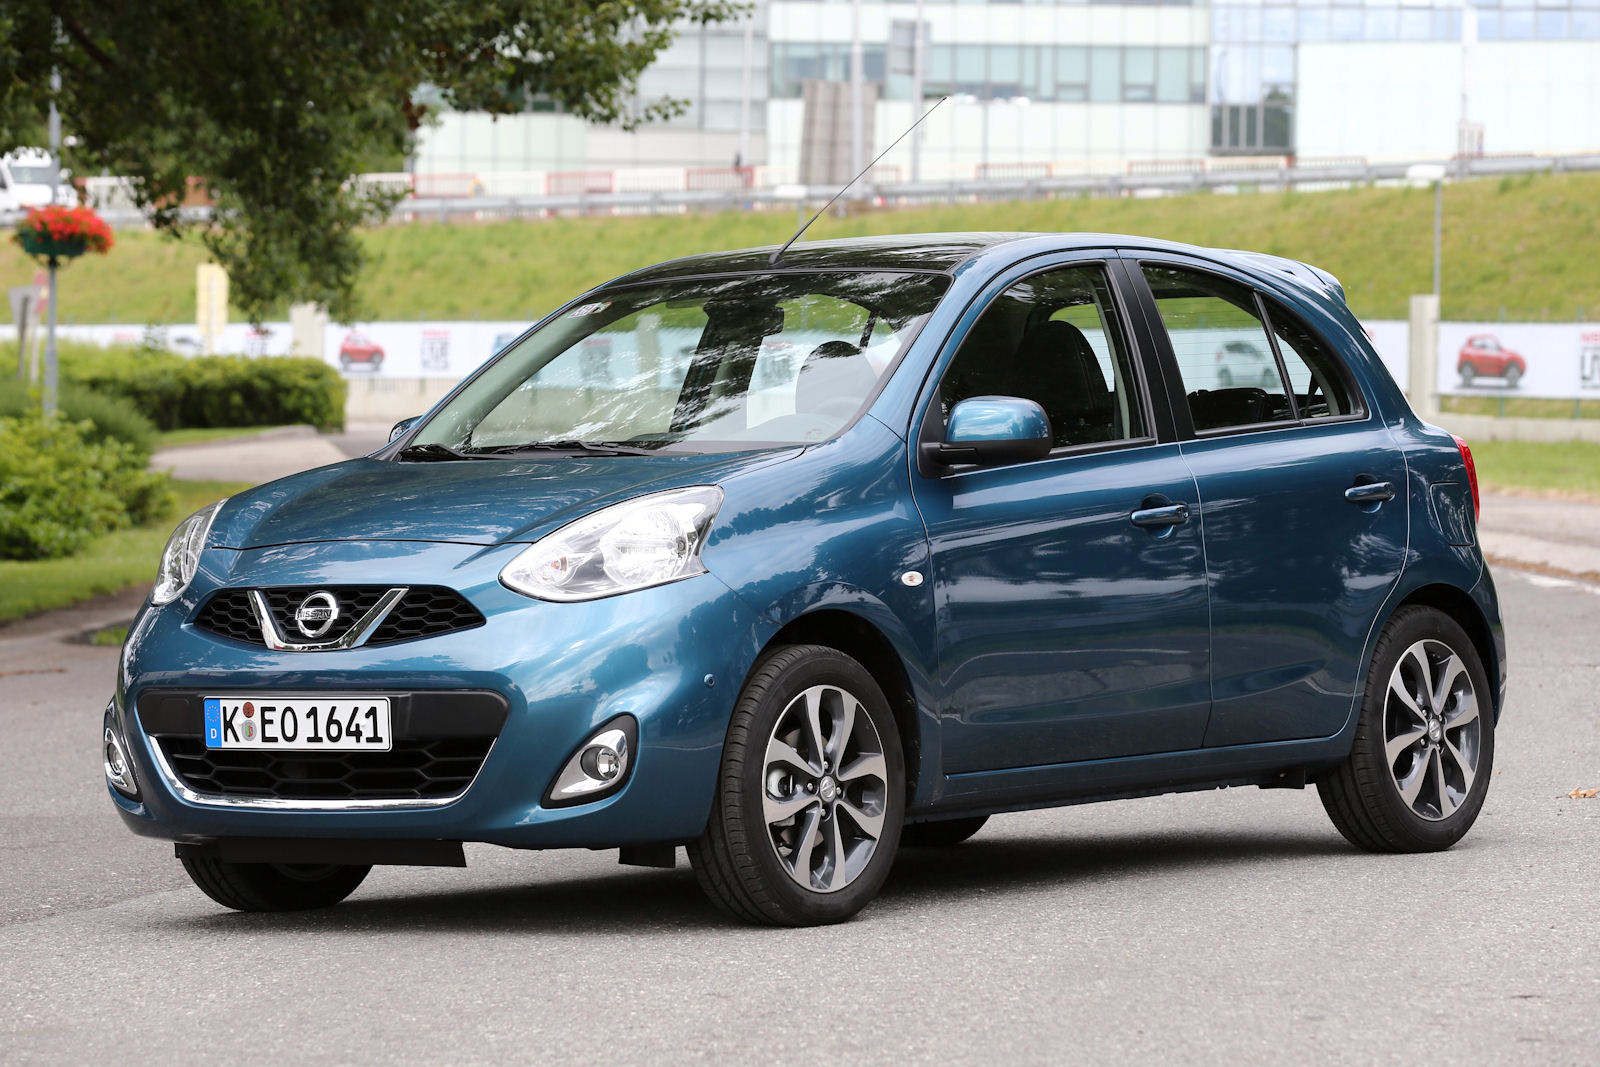 2016 nissan micra k13 pictures information and specs. Black Bedroom Furniture Sets. Home Design Ideas